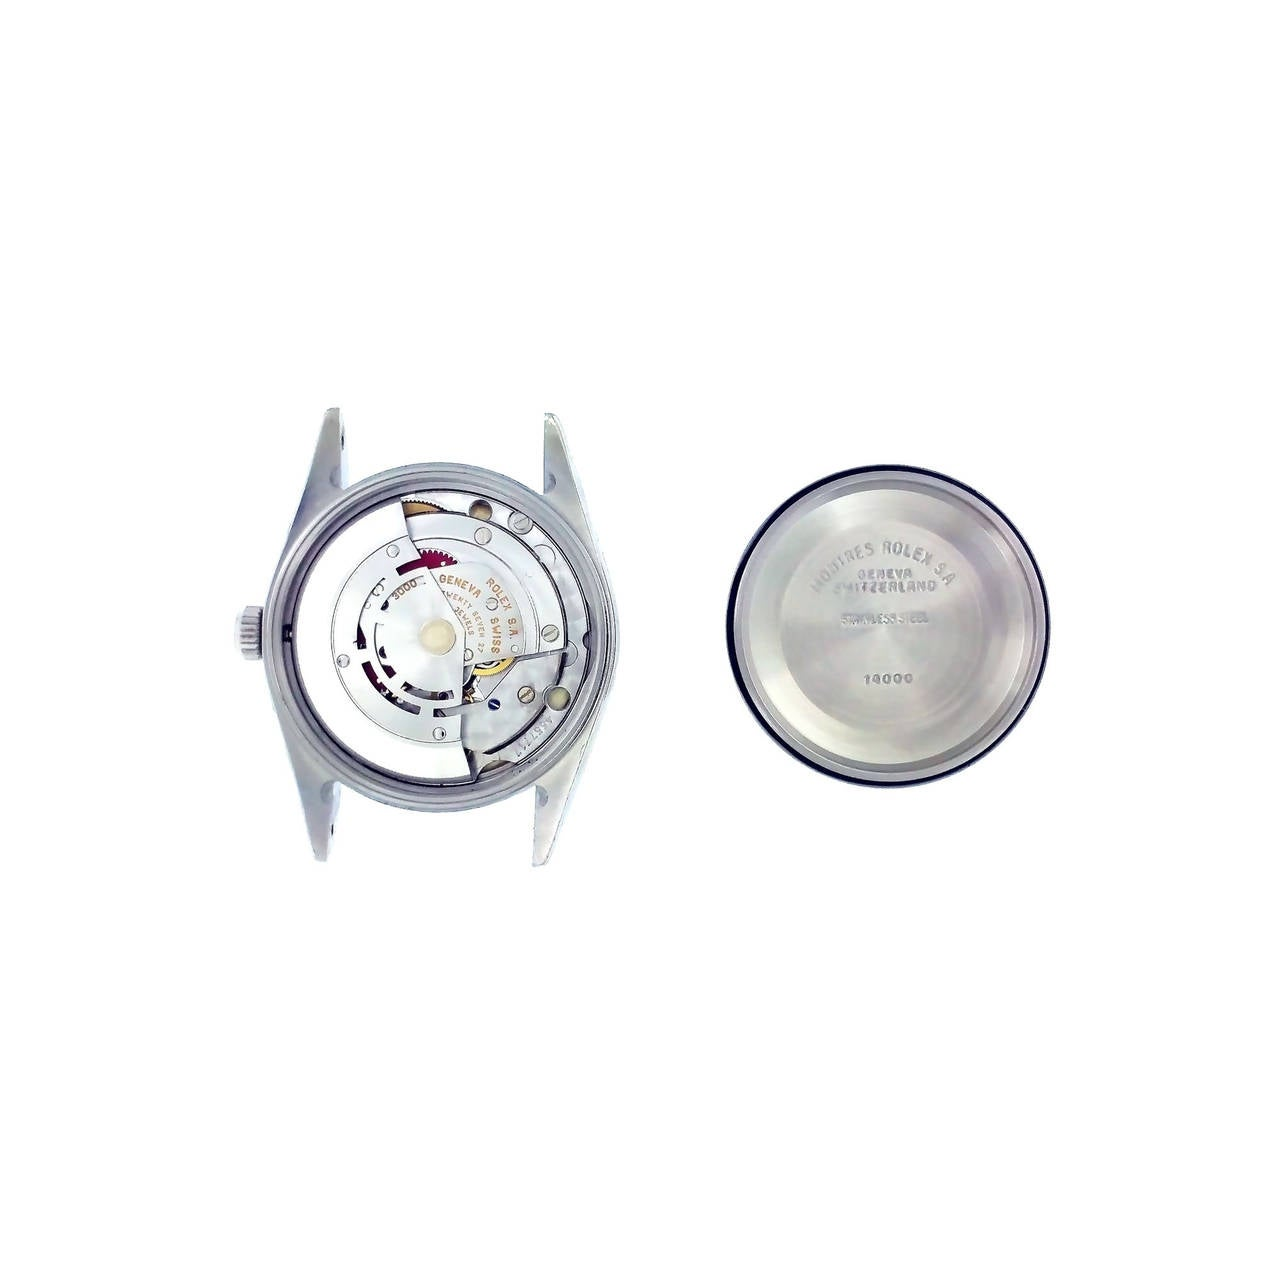 Rolex Stainless Steel Oyster Perpetual Air King Wristwatch Ref 14000 7